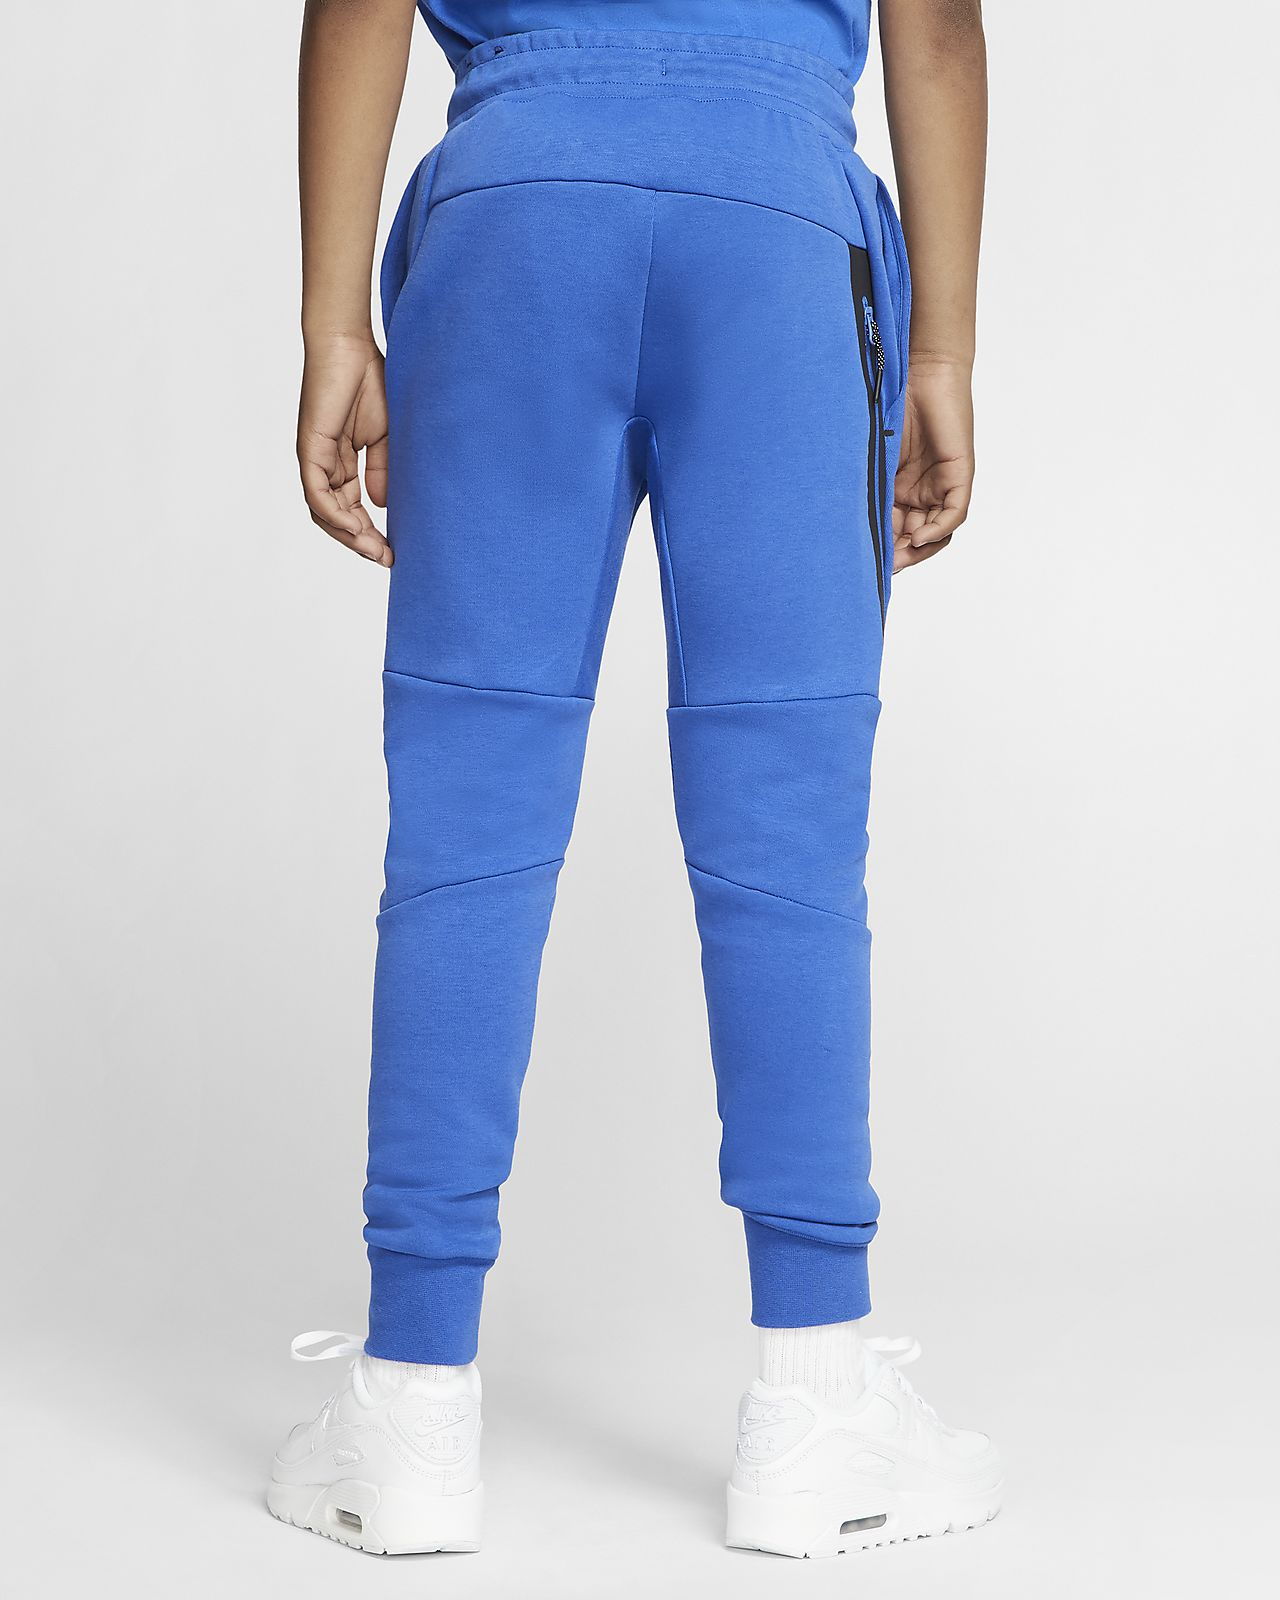 nike jogginghose 3 xl